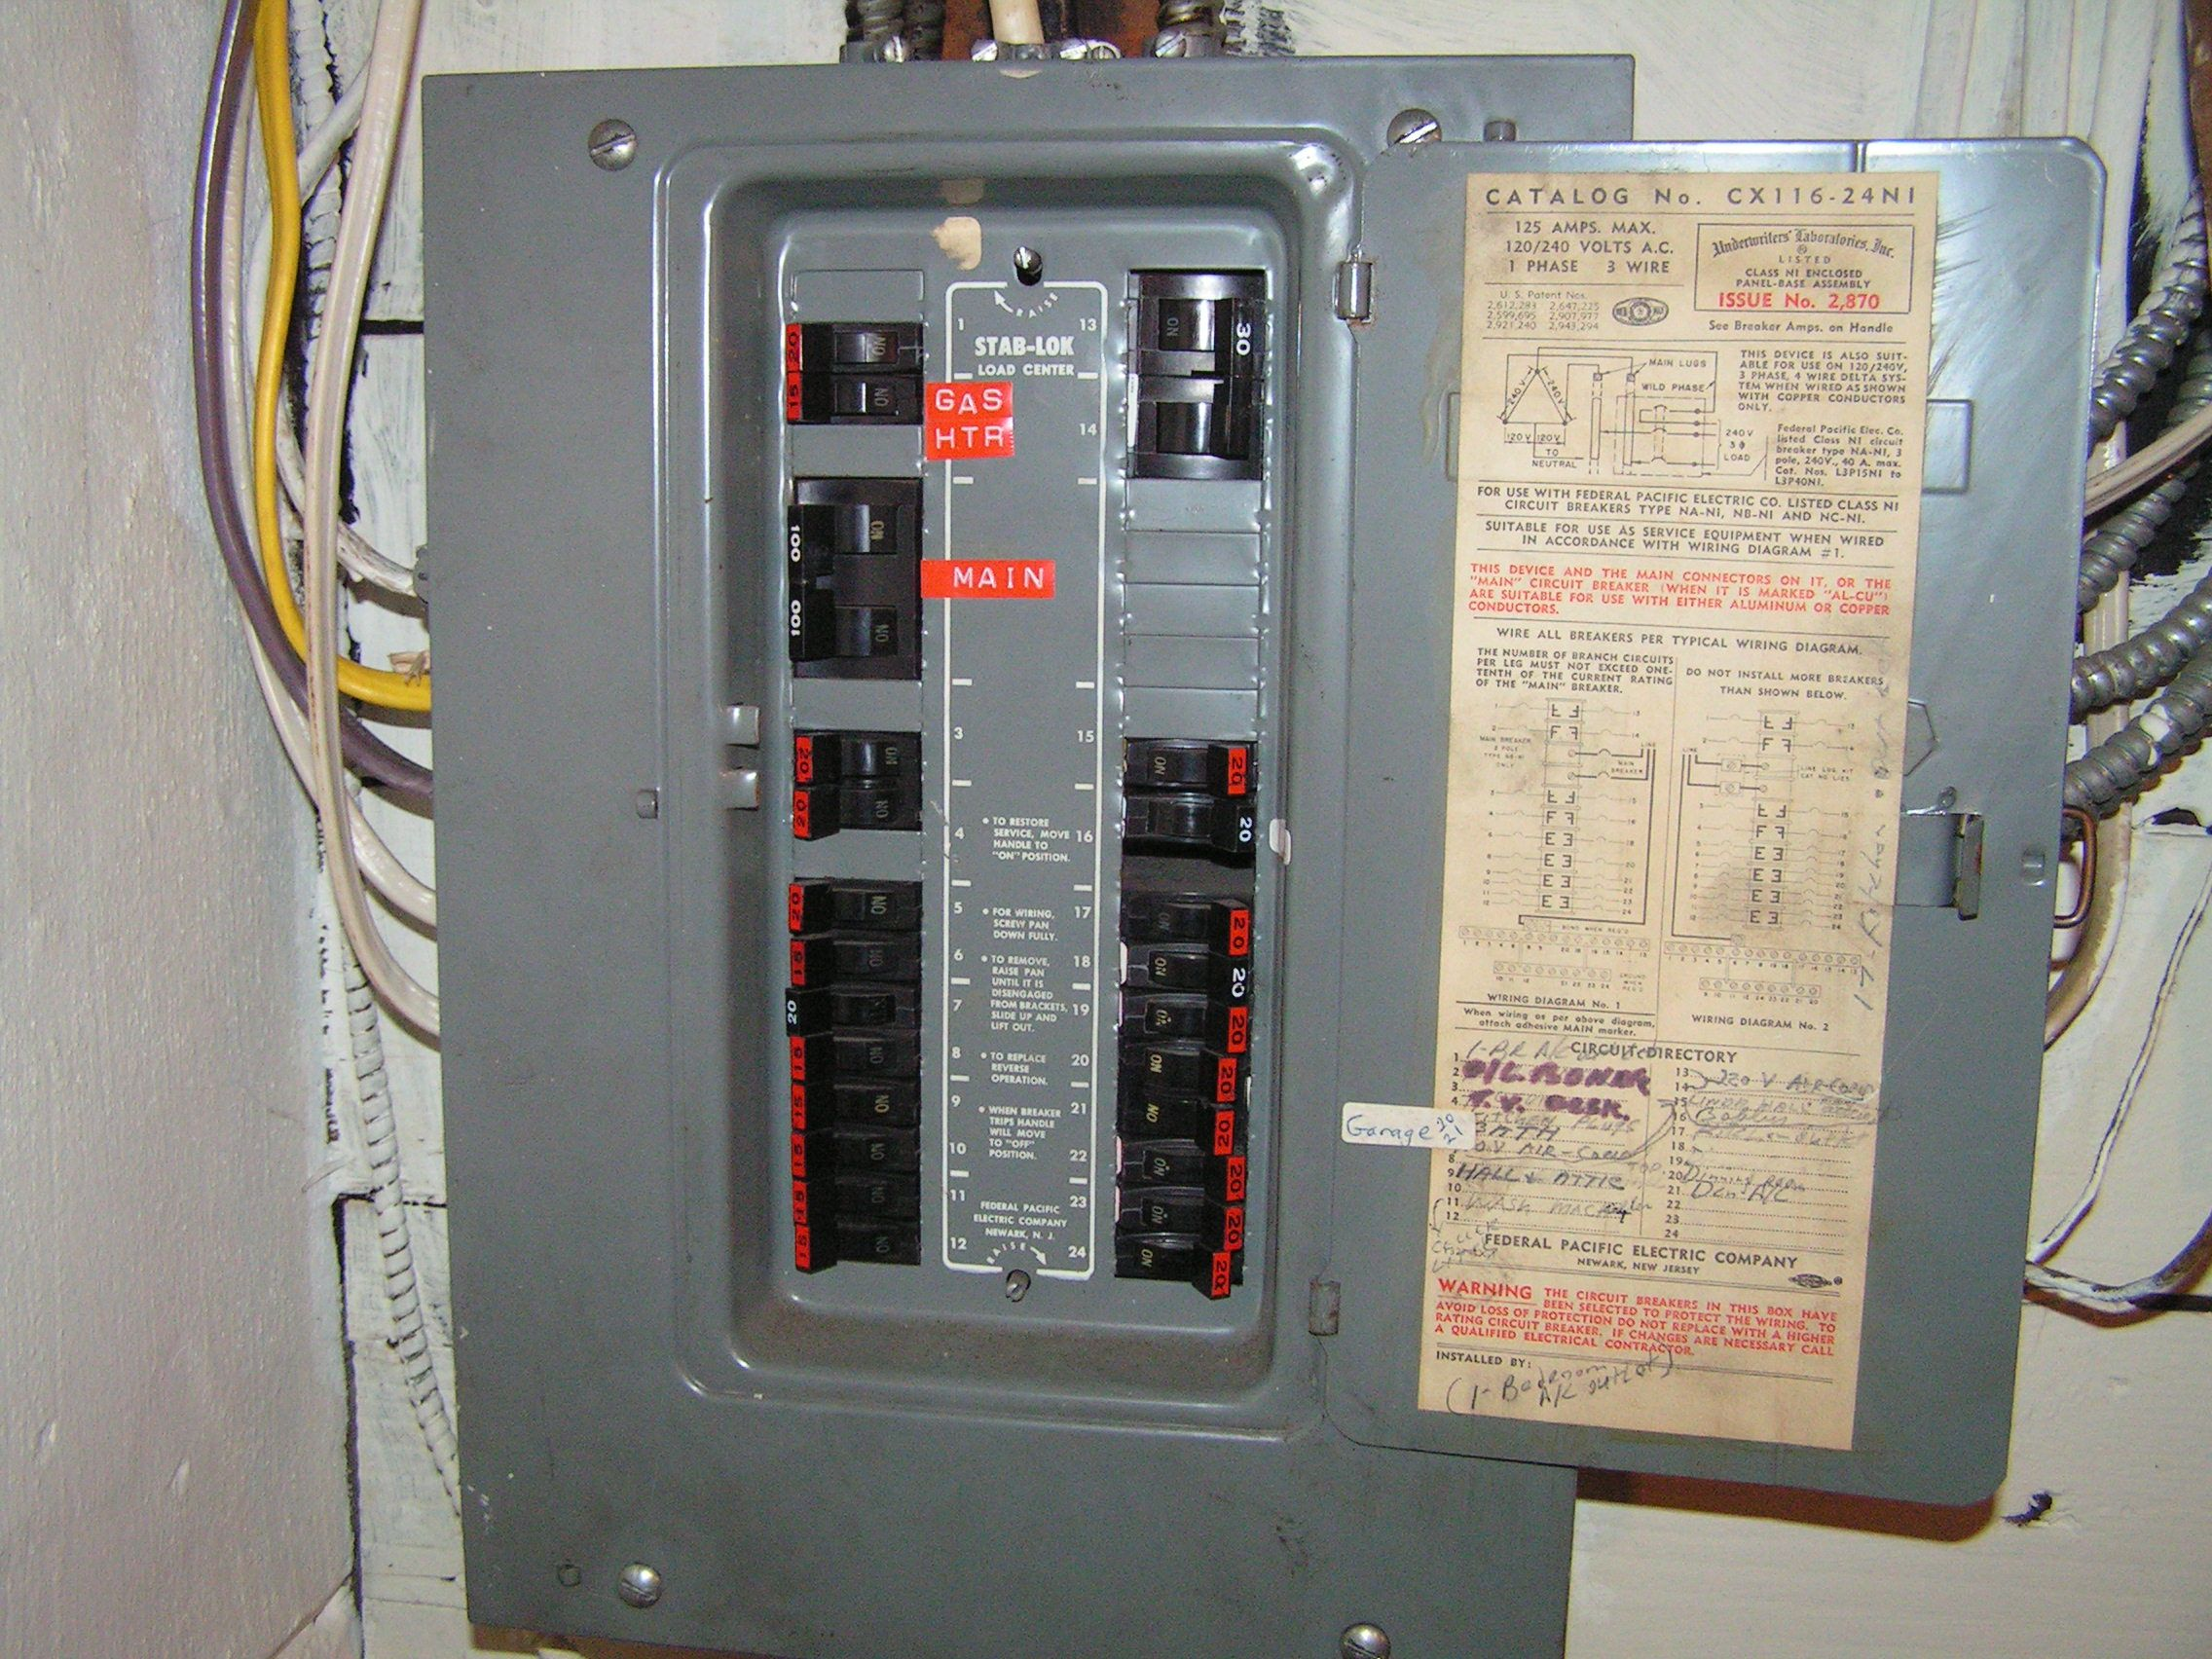 The Federal Pacific Electric Panel Is A Known Fire Hazard Enclosed Circuit Breaker Enclosure Has